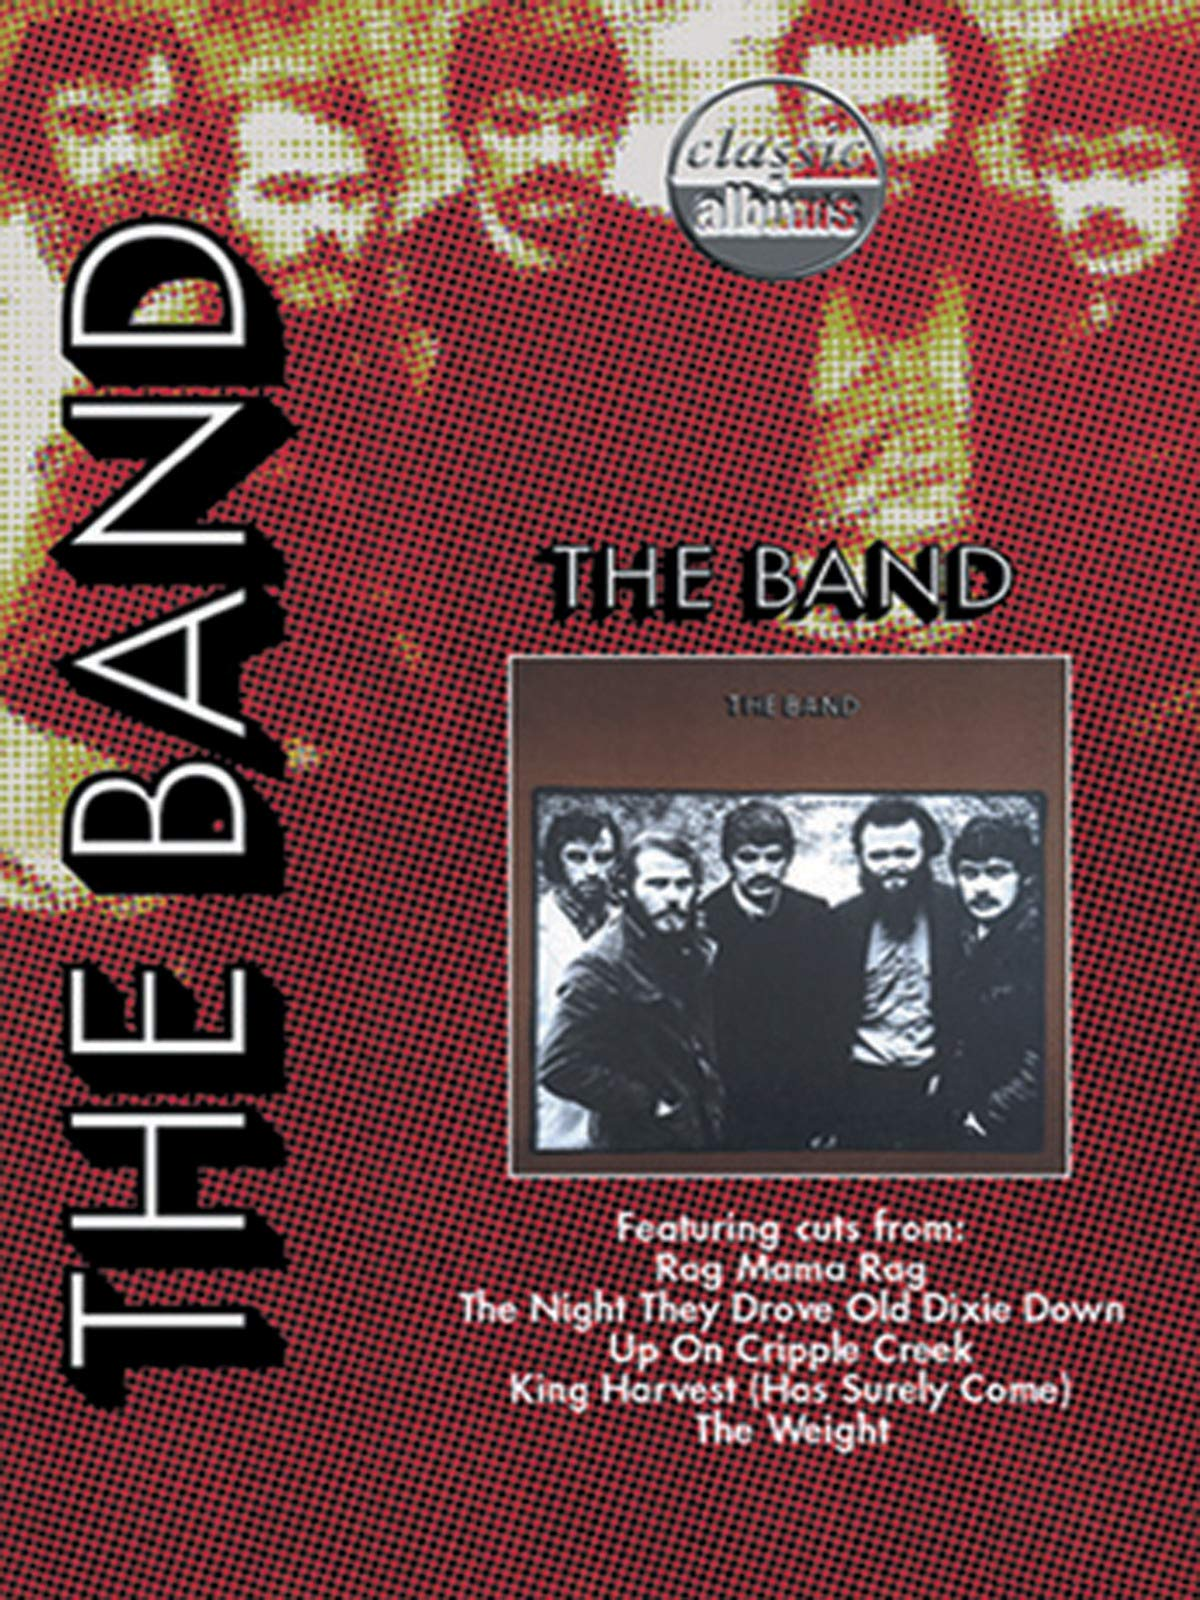 The Band - The Band (Classic Album) on Amazon Prime Video UK